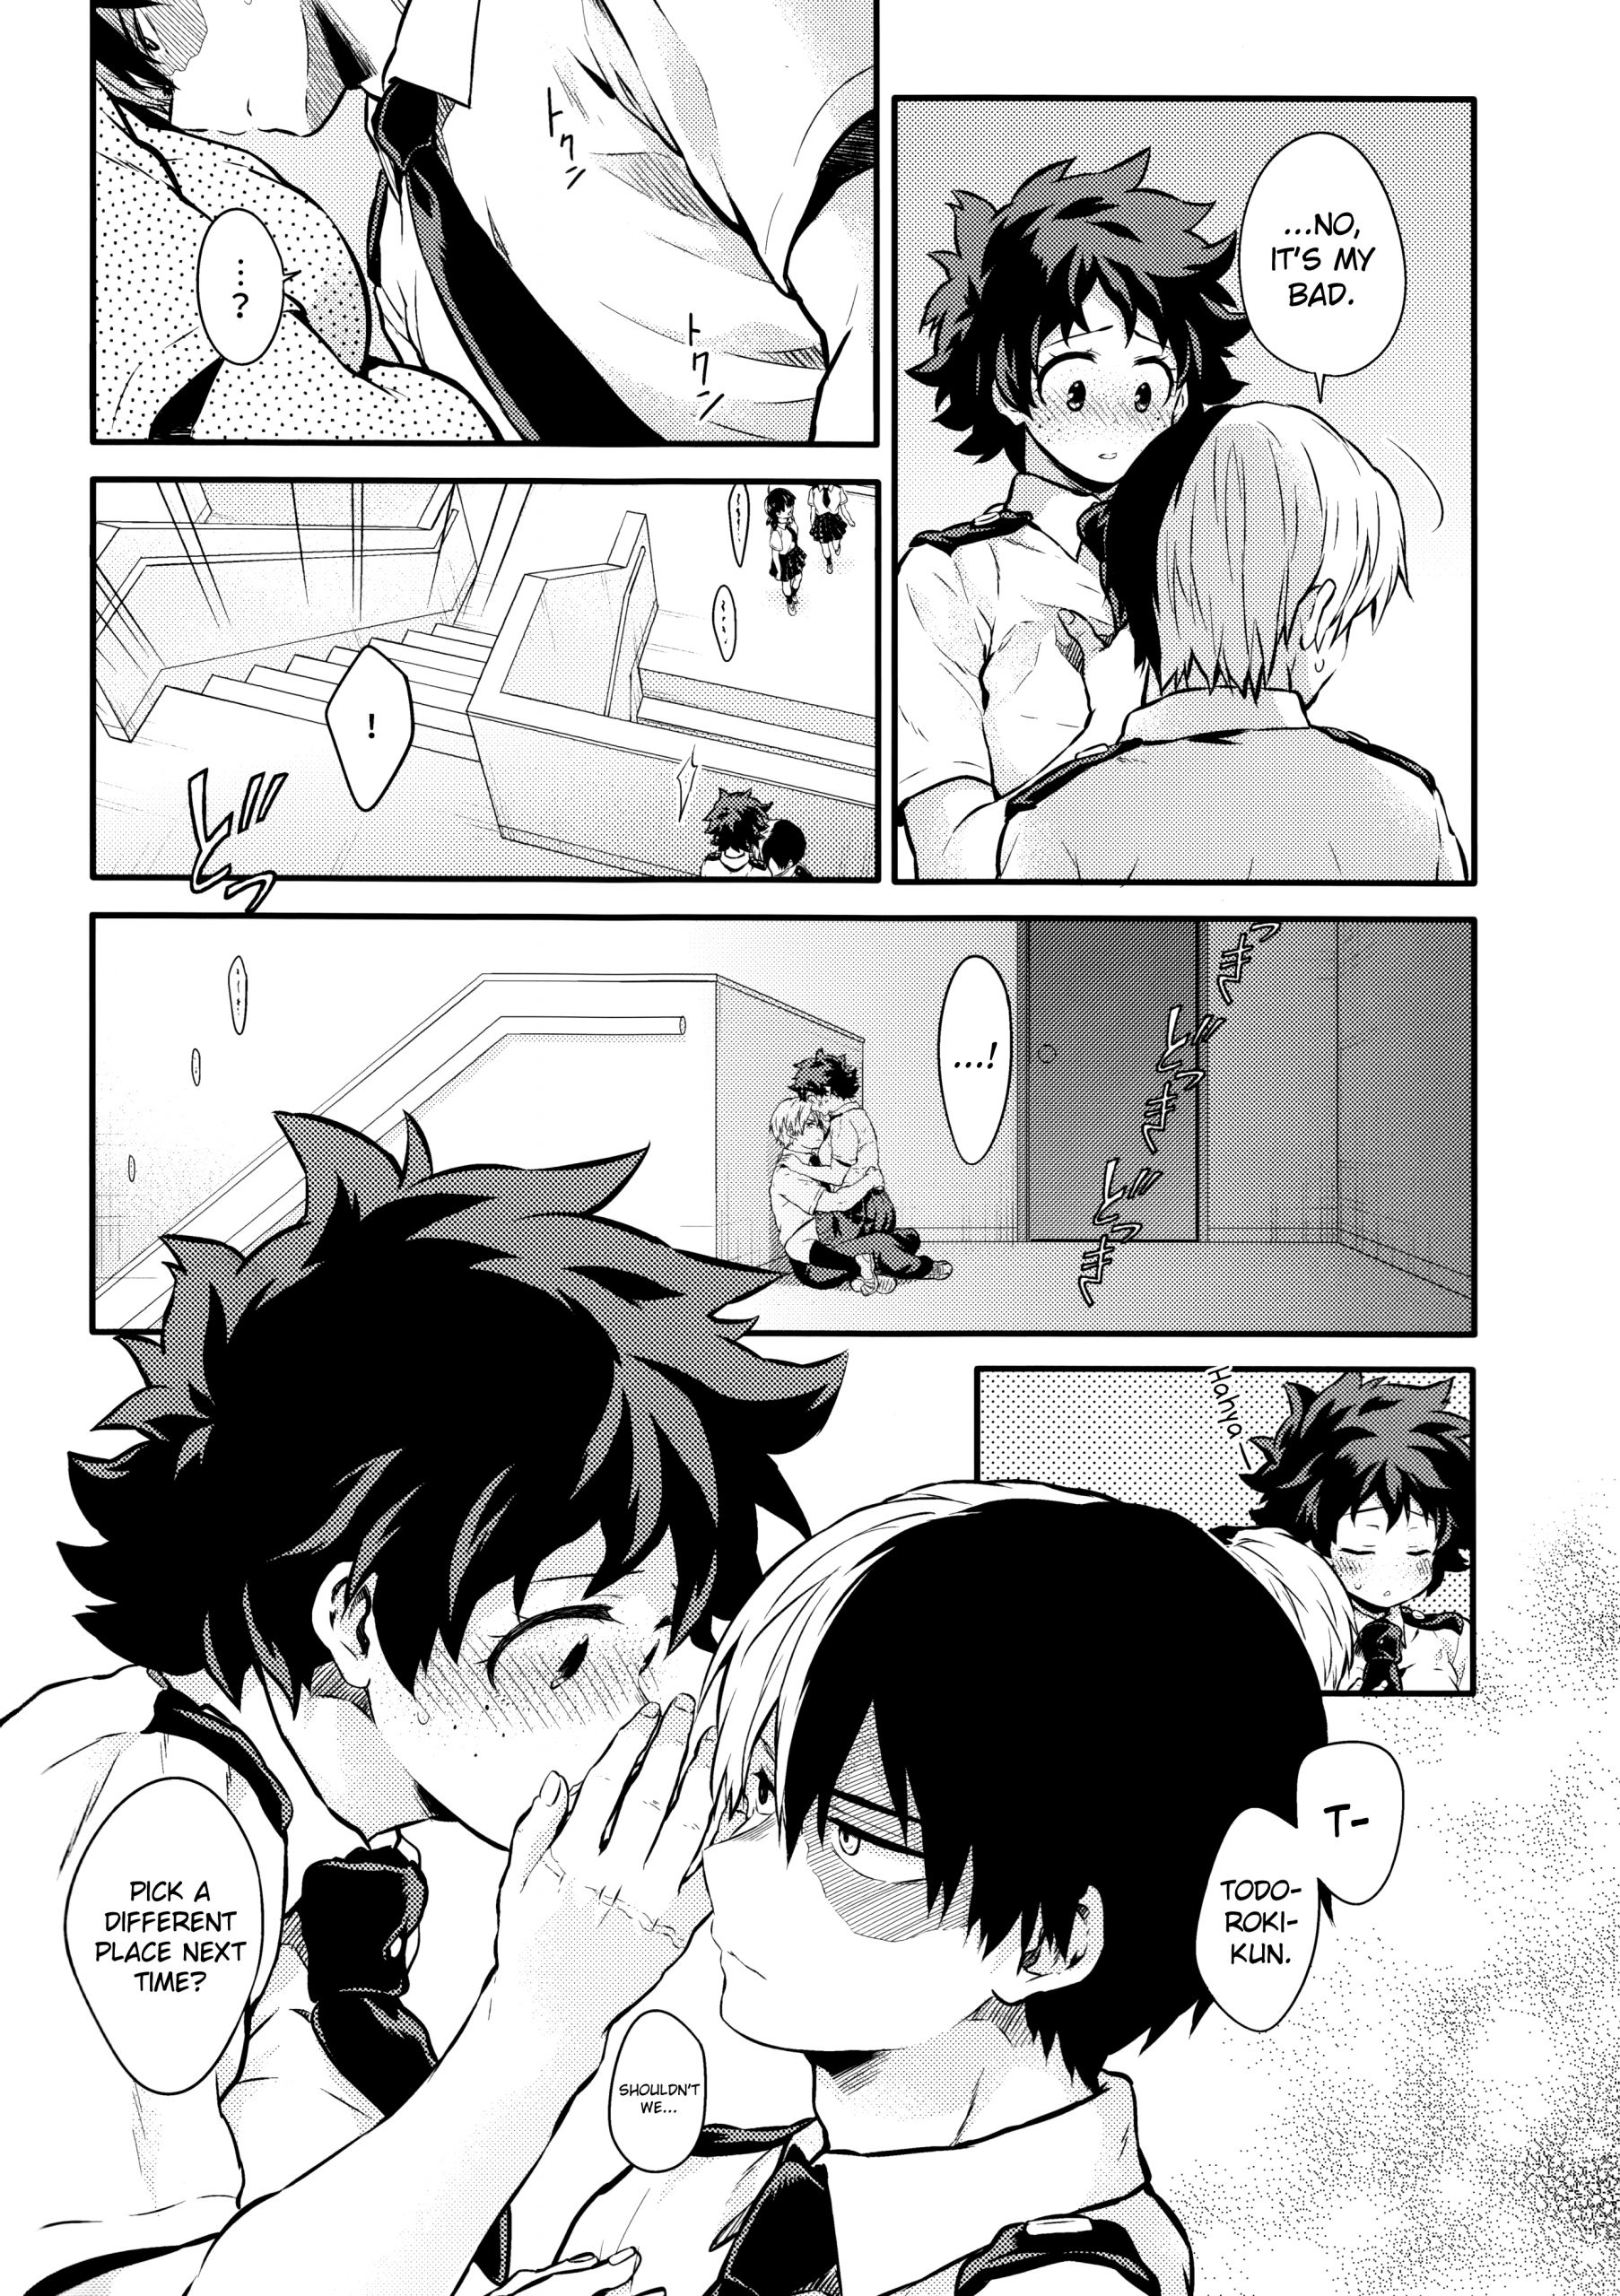 Love me tender another story hentai manga picture 56